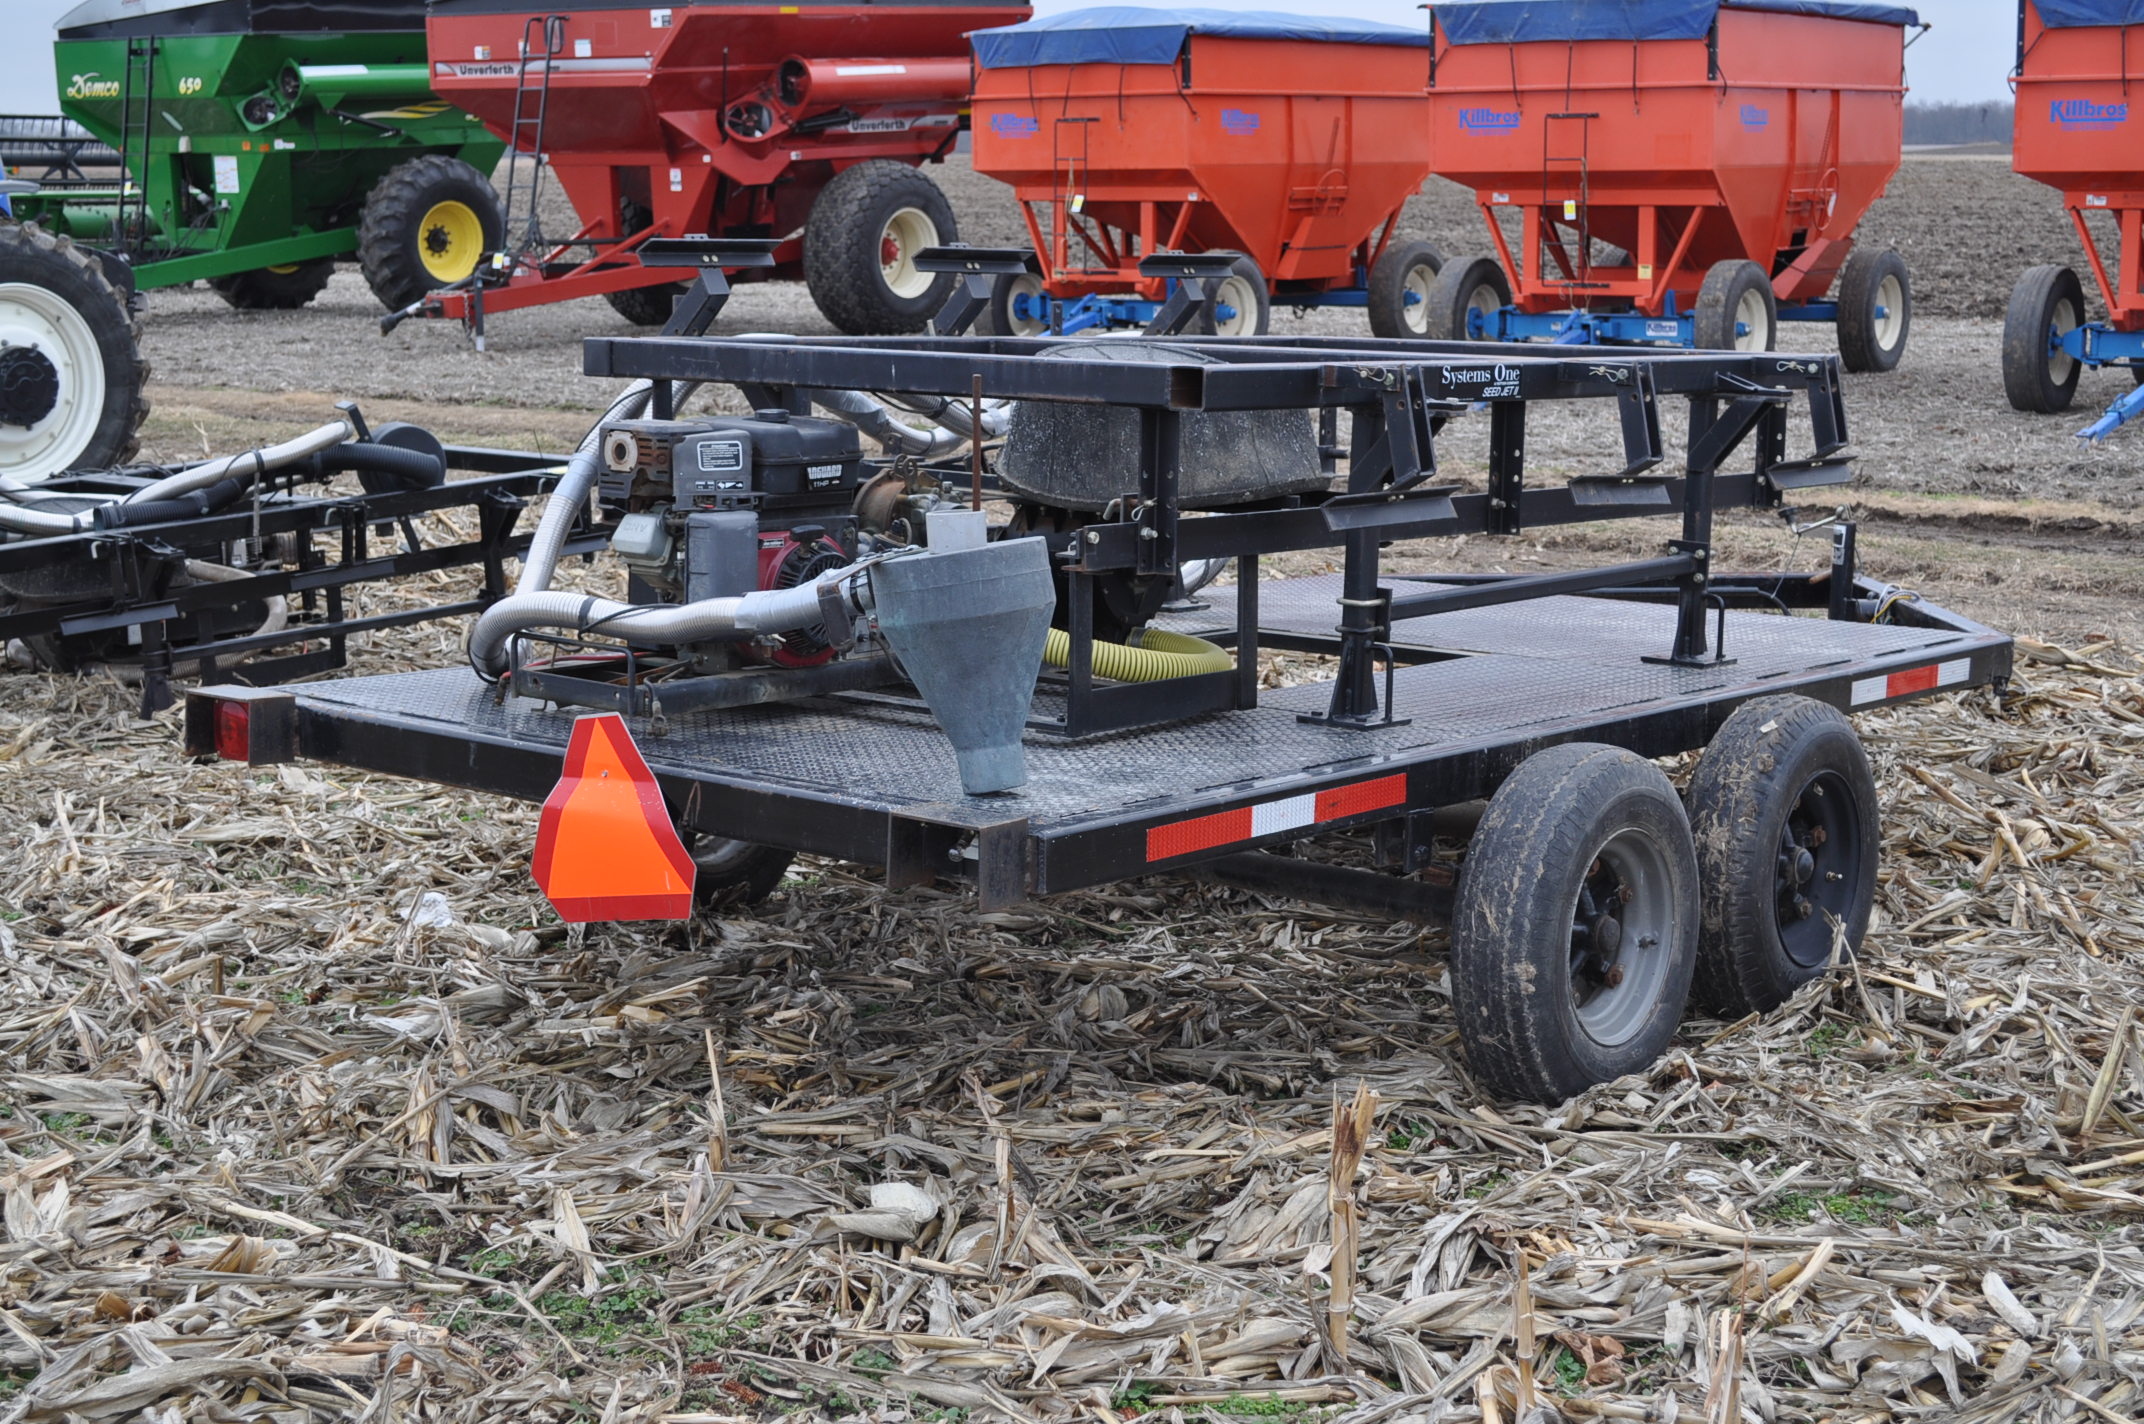 Yetter Seed Jet II air transfer seed tender, holds 2 pro boxes, Briggs & Stratton gas engine, on - Image 3 of 9